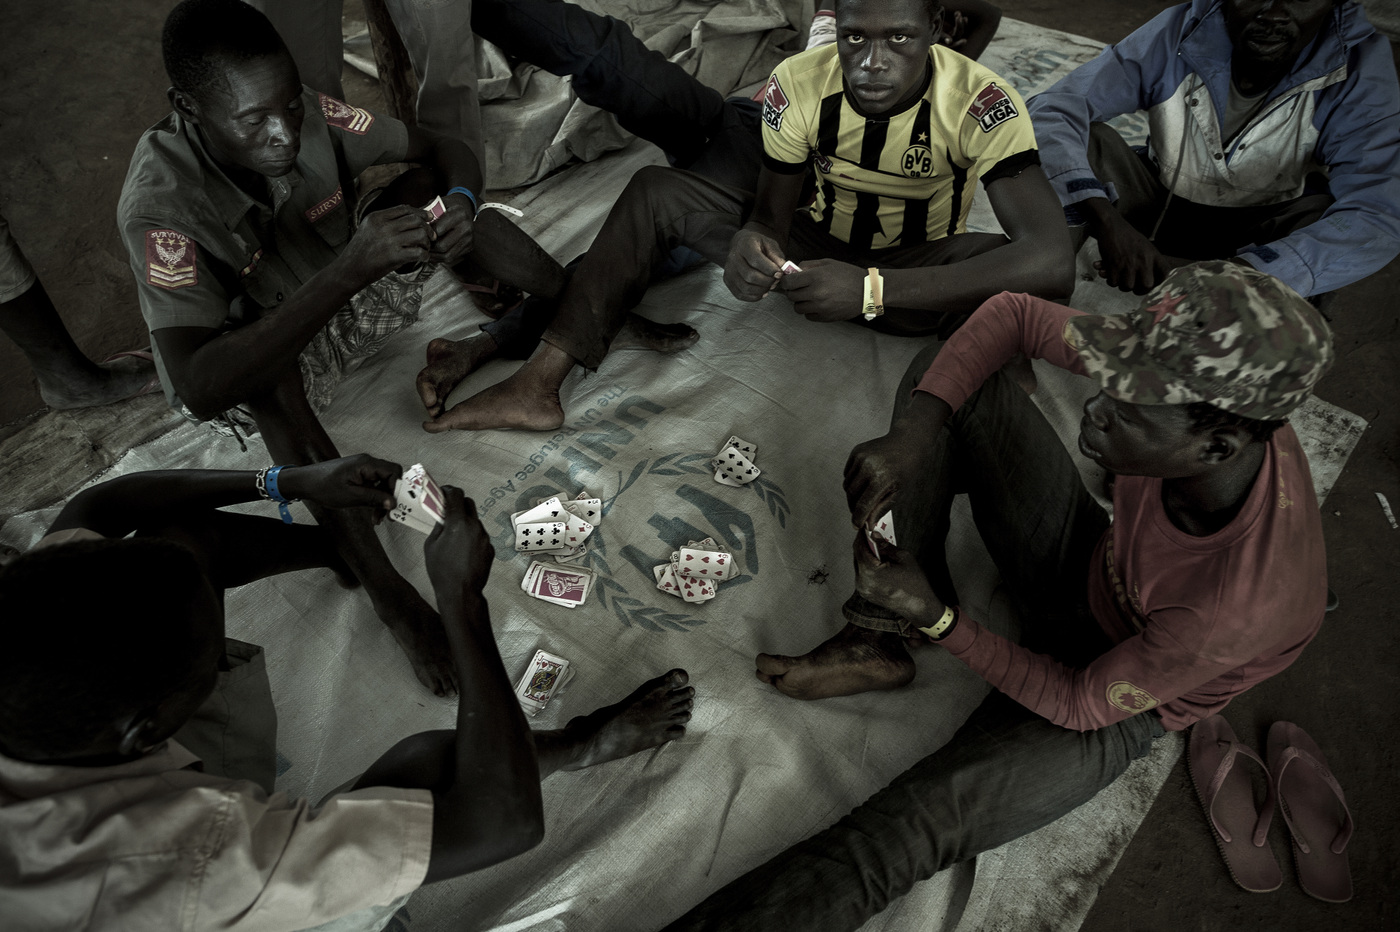 John T. Pedersen Photography - A maximum of 48 hours takes the time to be registered by the authorities, and a residence permit can be granted. Some find common knowledge on the Ugandan side.  Some guys play cards while waiting while waiting for further transport to the settlement area.